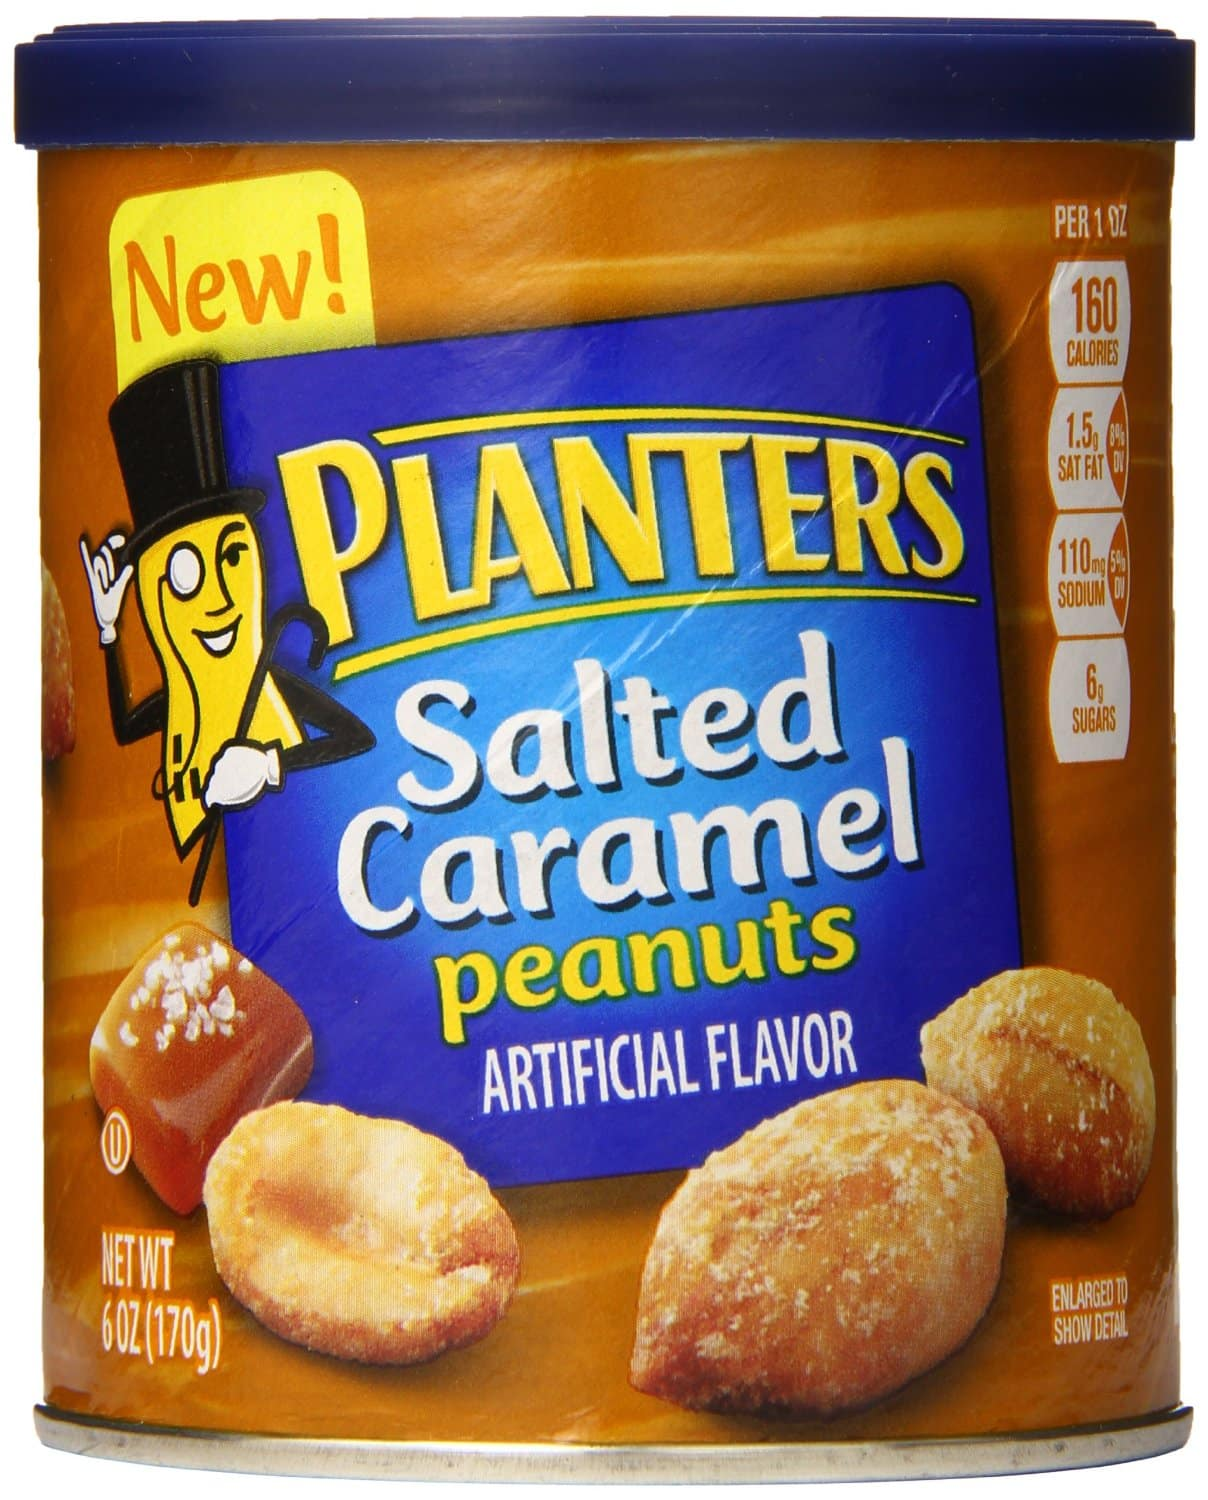 Prime Members: 8-Pack of 6oz Planters Peanuts (Salted Caramel)  $8.30 + Free Shipping